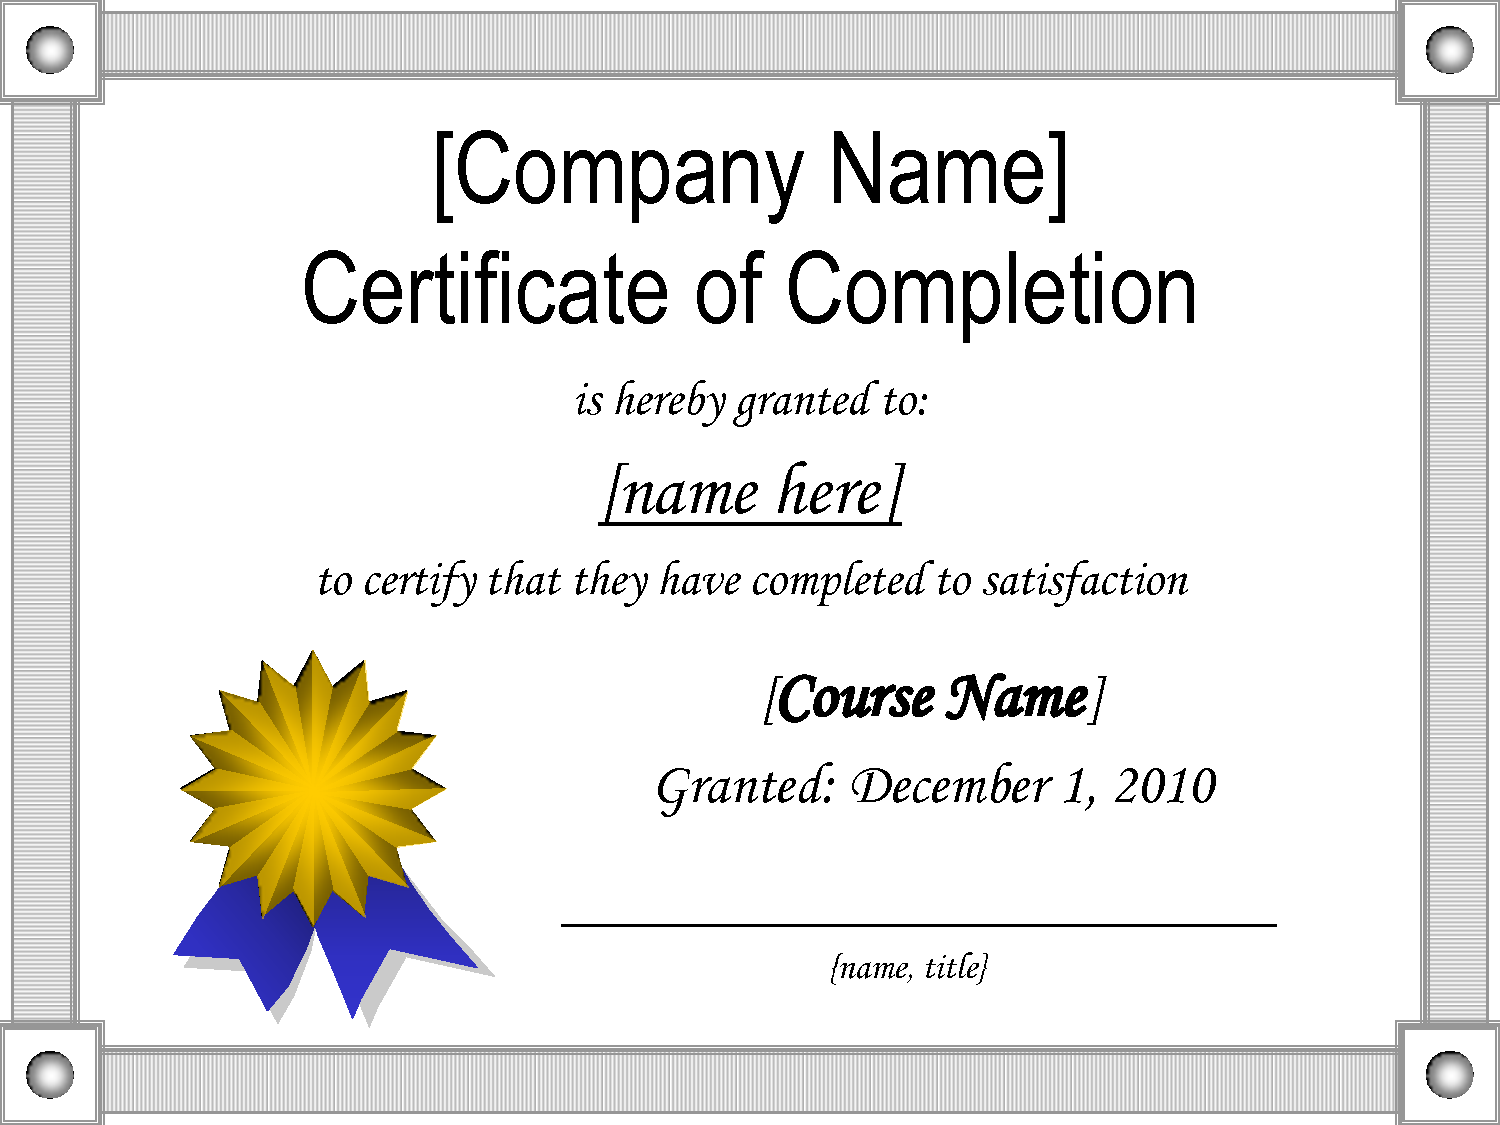 samples of certificate of completion